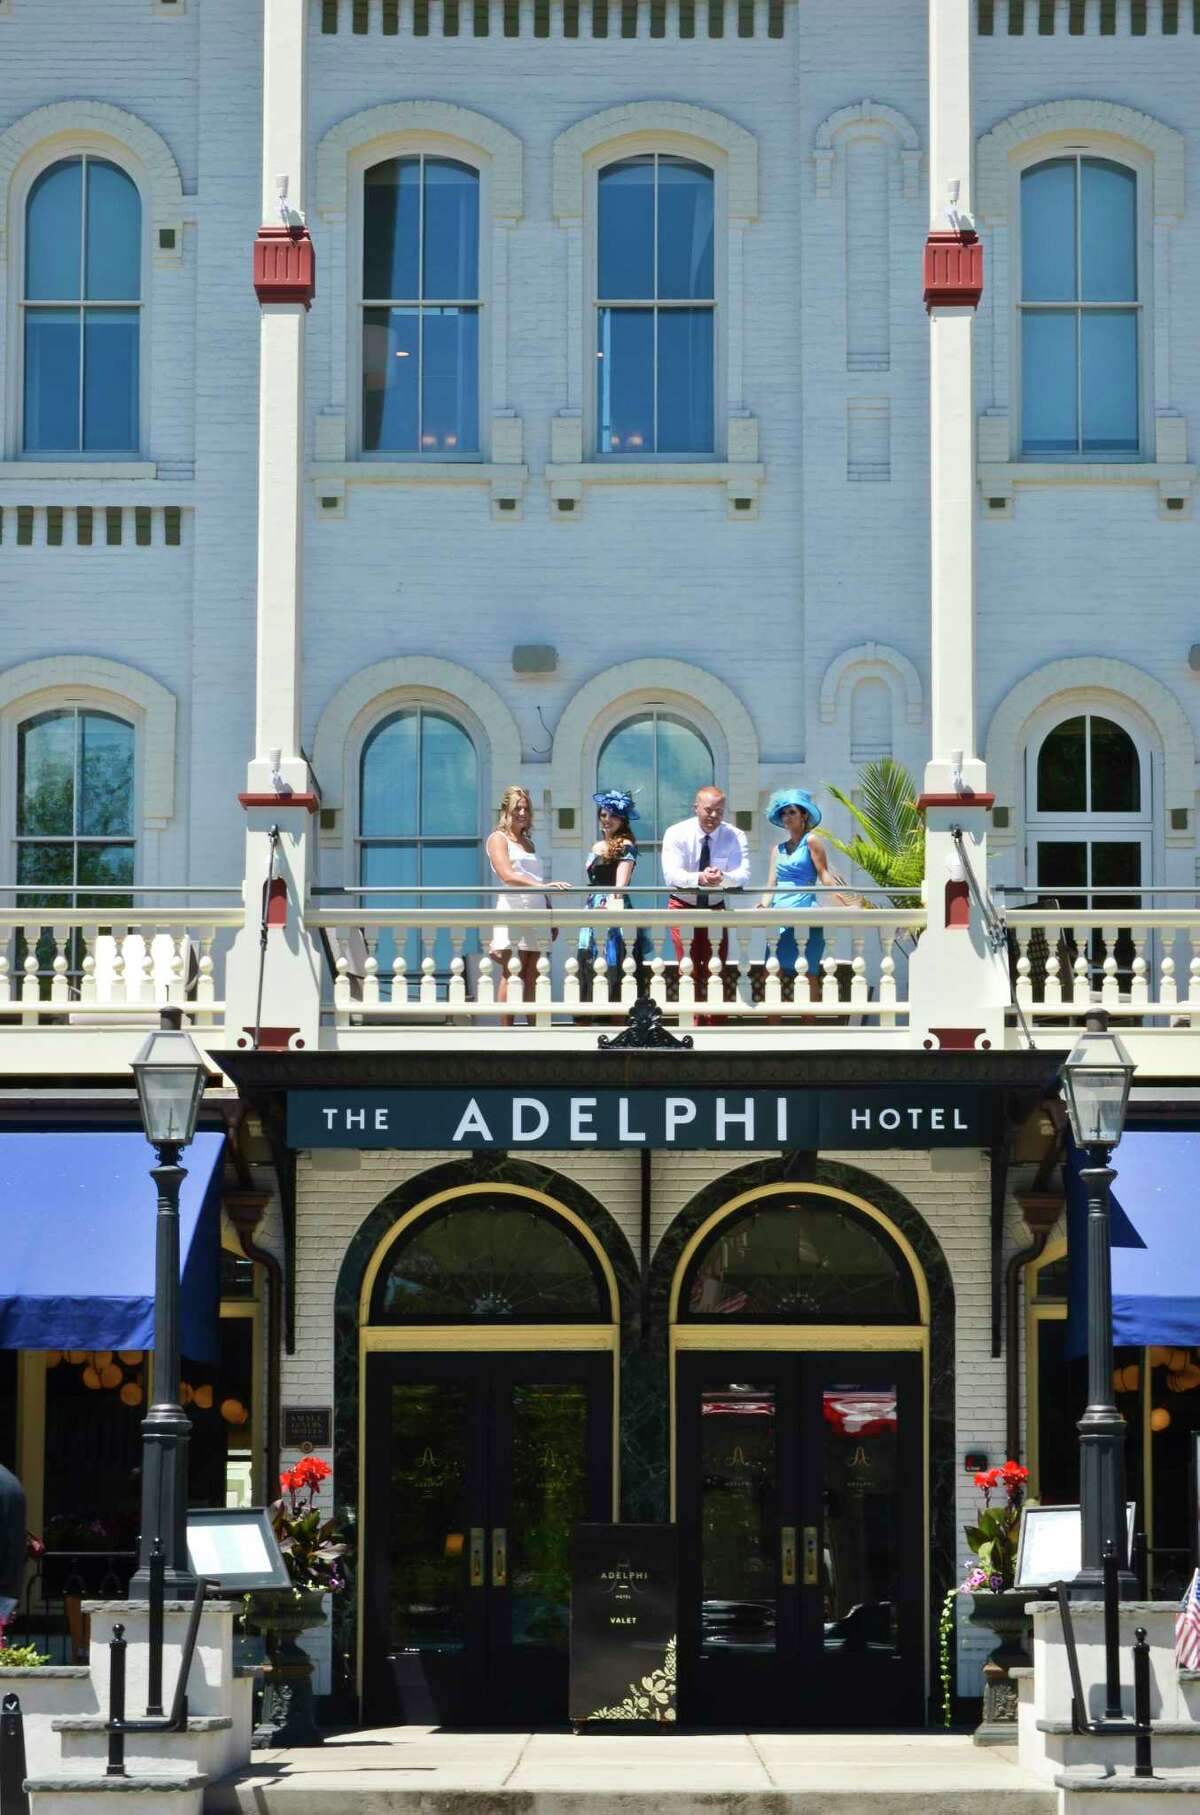 Models pose during a fashion shoot at The Adelphi in Saratoga Springs, NY, on Tuesday, June 19, 2018. BCI was involved in the reconstruction of the famed hotel. (Photo by Colleen Ingerto / Times Union)